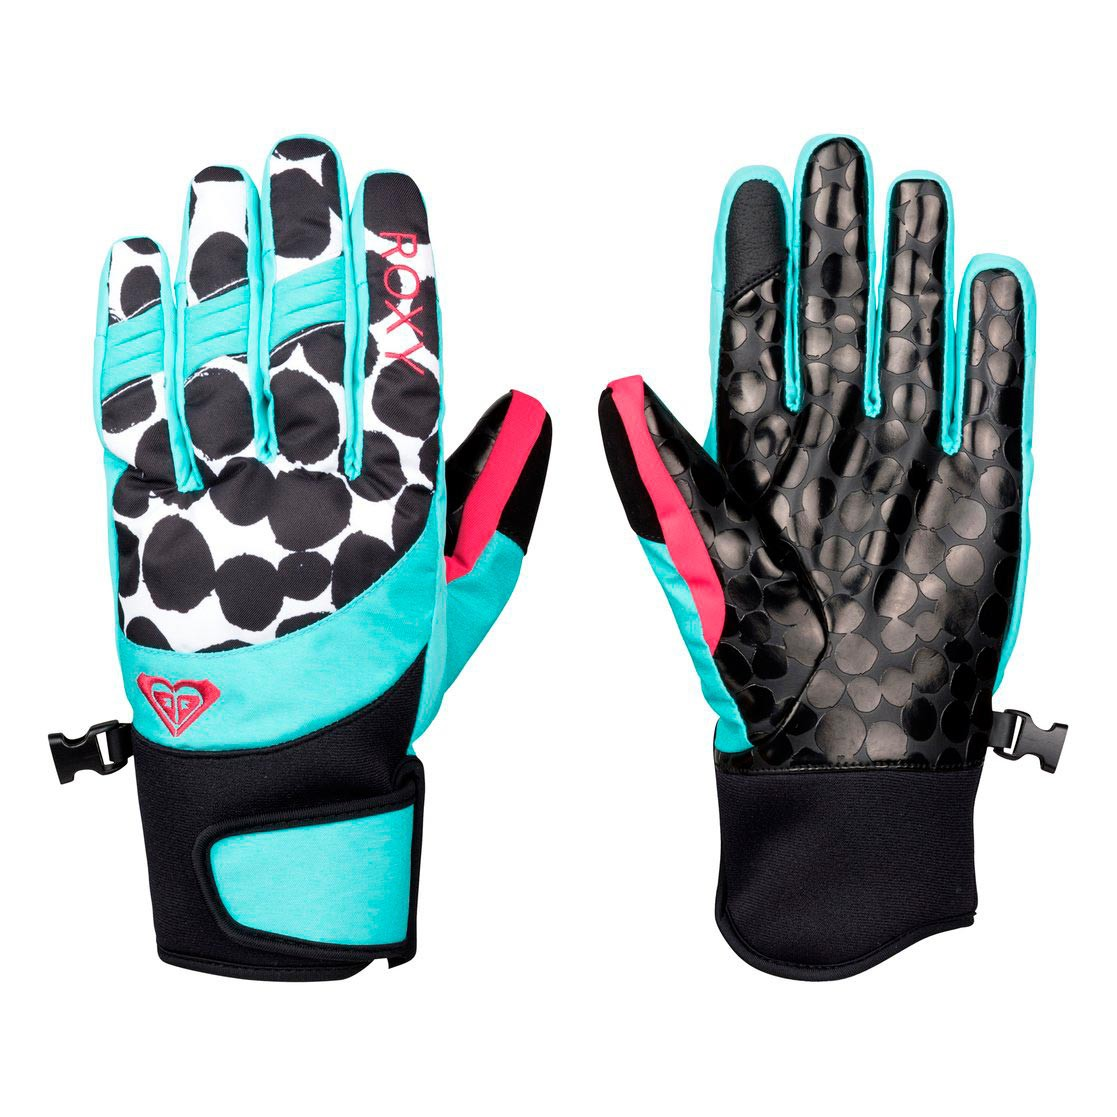 Rukavice Roxy High Five irregular dots true black vel.M 16/17 + doručení do 24 hodin